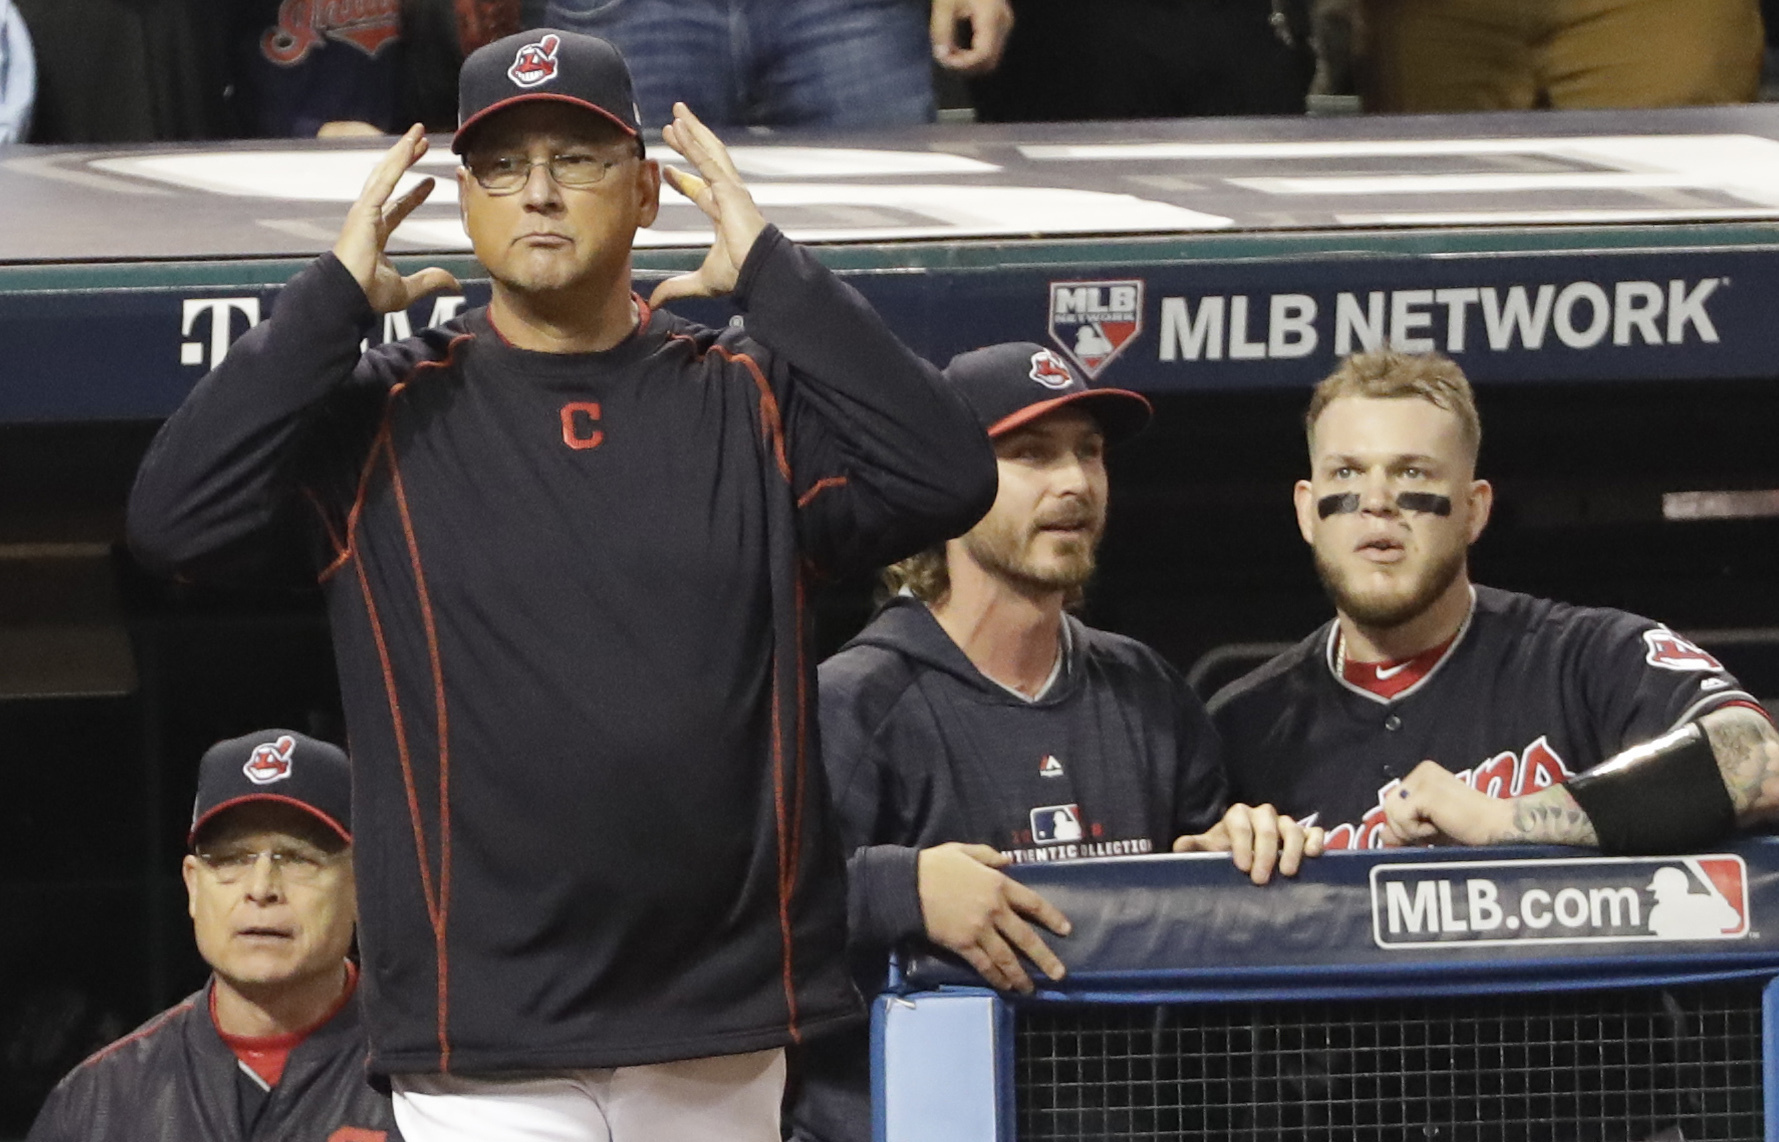 Cleveland Indians manager Terry Francona requests an instant replay during the third inning of Game 7 of the Major League Baseball World Series against the Chicago Cubs Wednesday, Nov. 2, 2016, in Cleveland. (AP Photo/David J. Phillip)